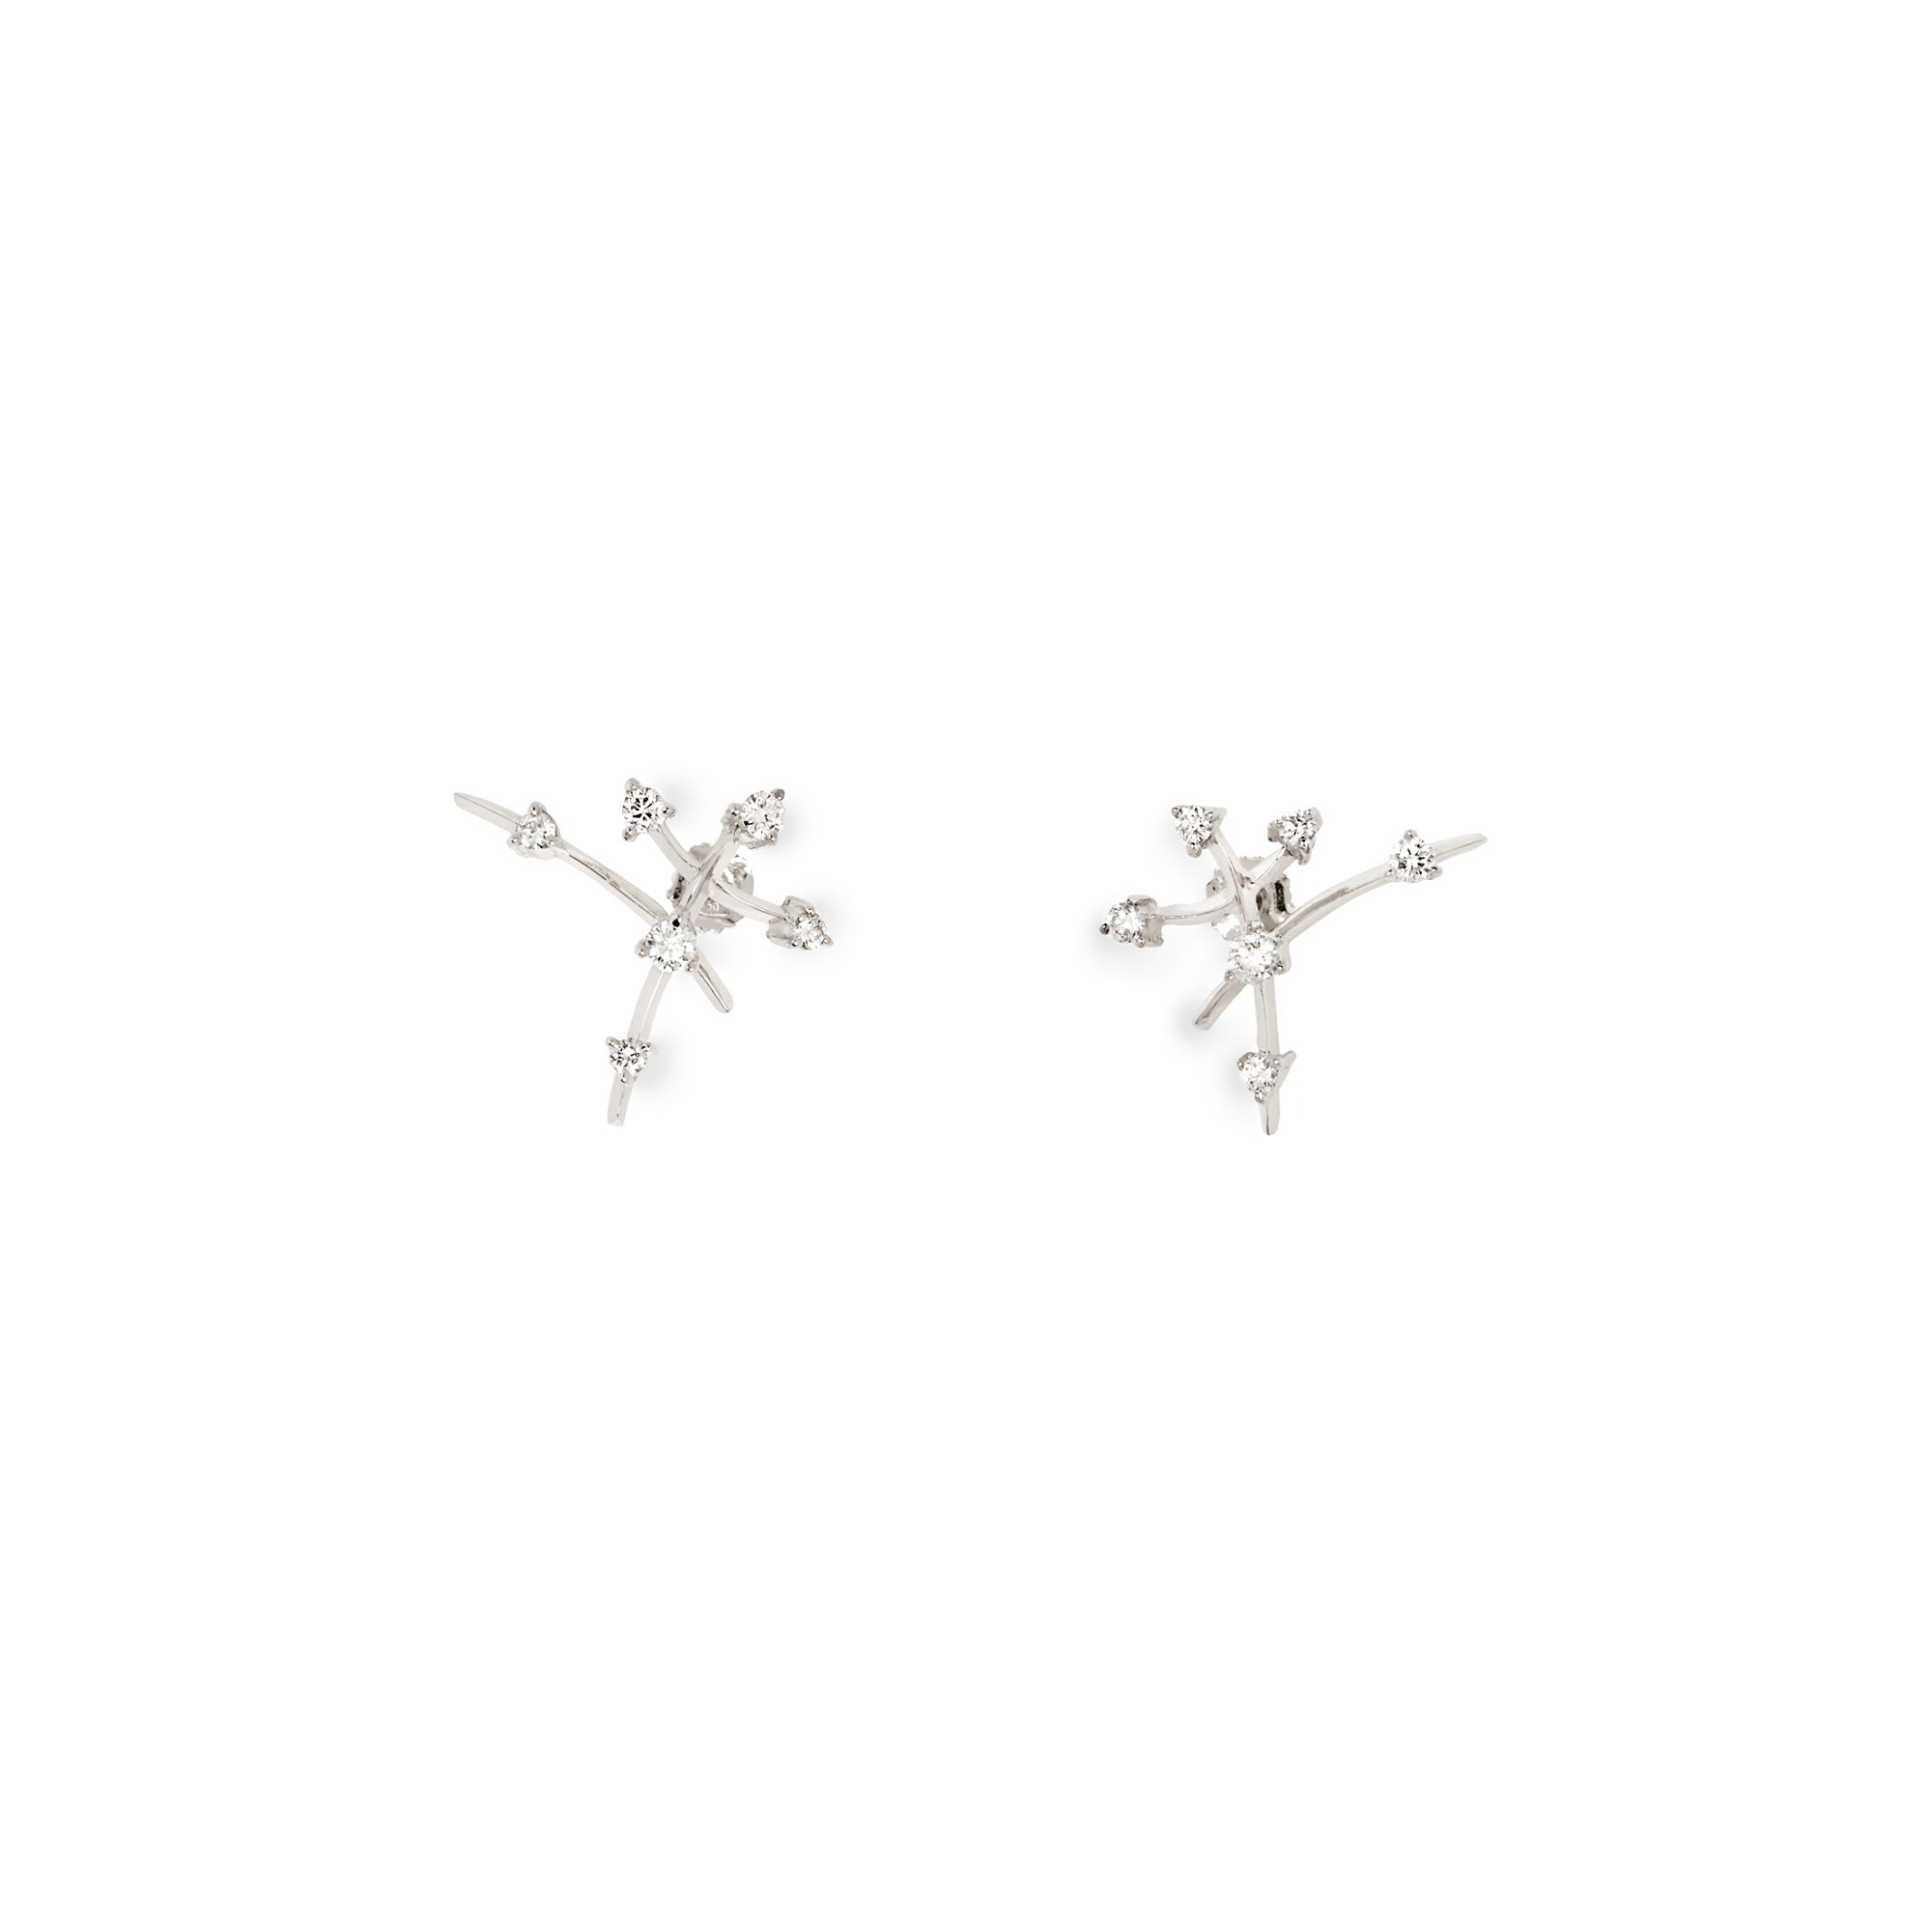 Kandisky Earrings in white gold and diamonds